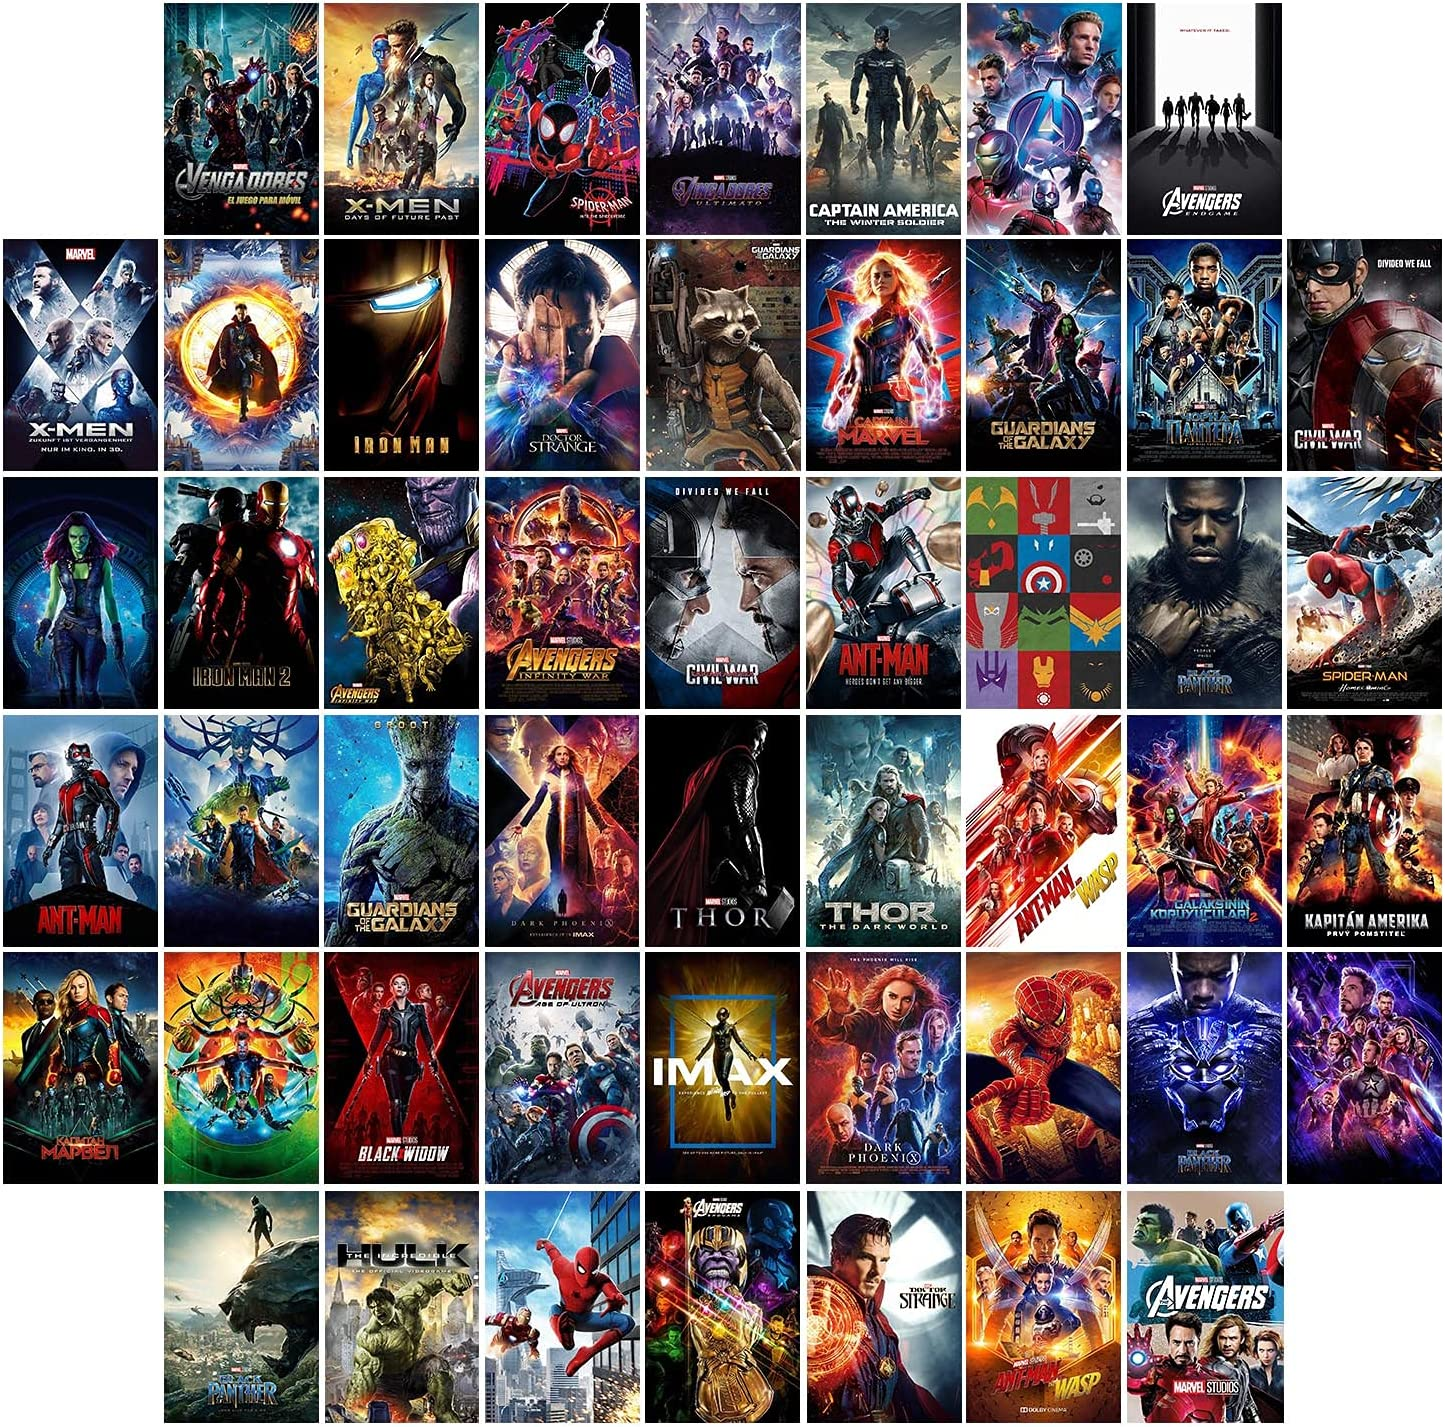 Mar_vel A_vengers Wall Collage Kit Pictures Movie Aesthetic Photo Collection Collage Wall Art Poster Decor for Boys Girls